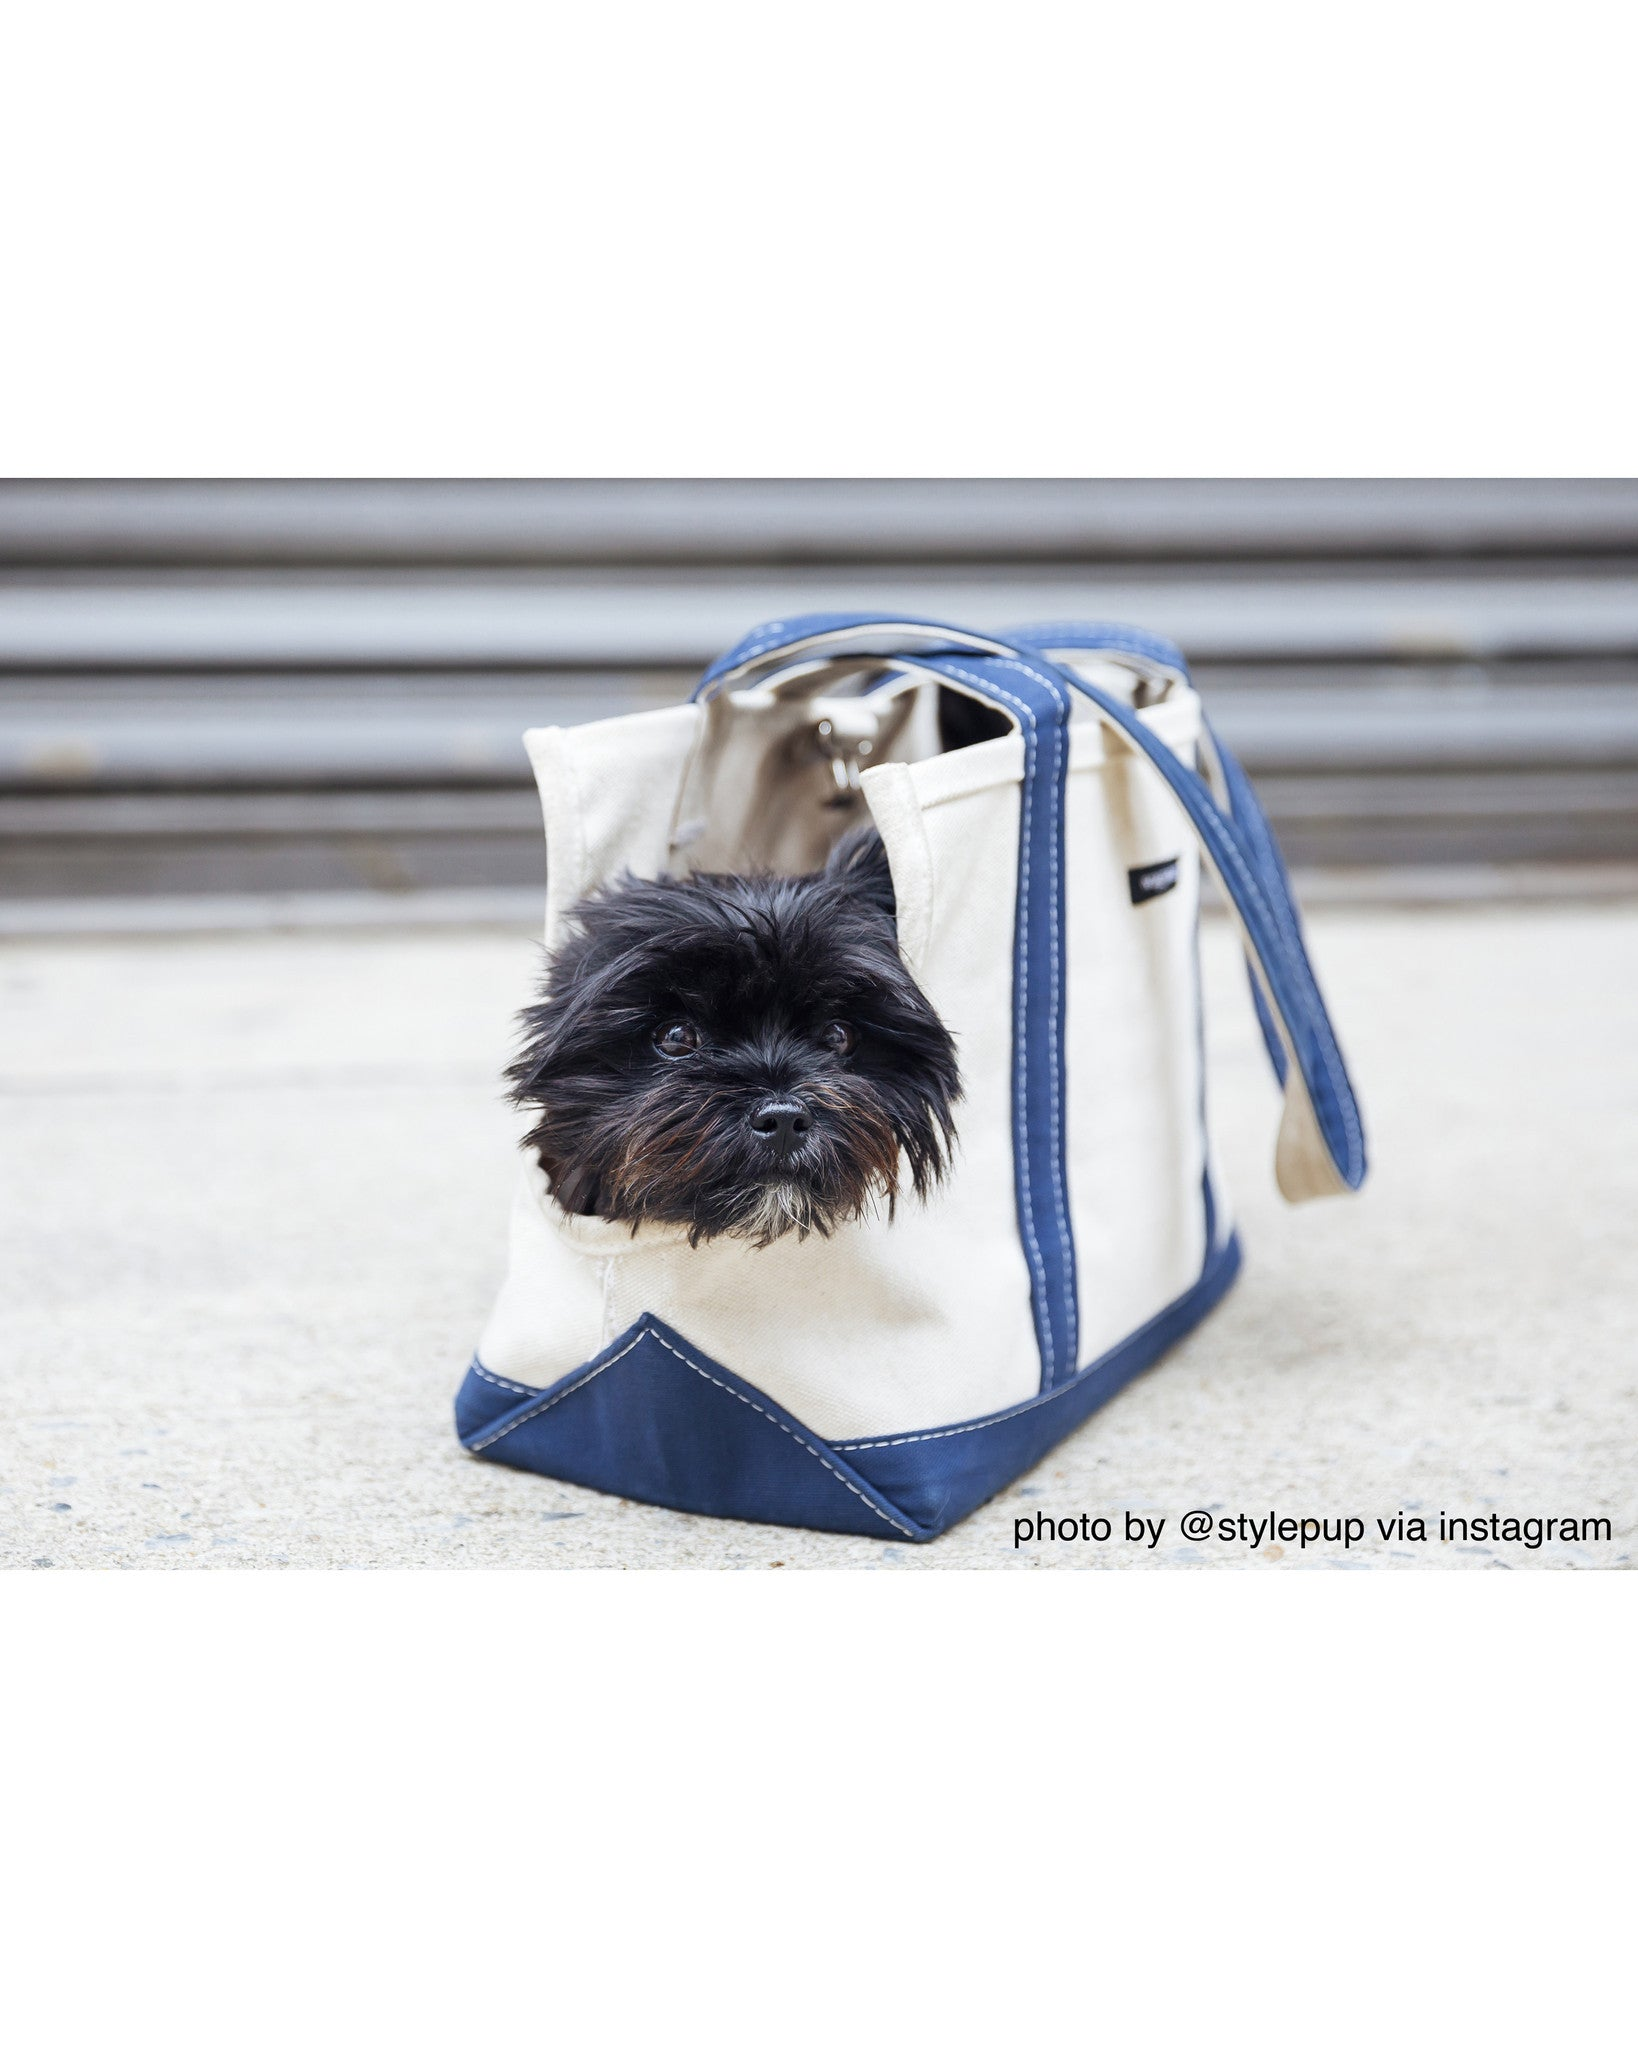 Wagwear | Summer Carrier | White Canvas Tote | Dog Carrier | 6 Color Options